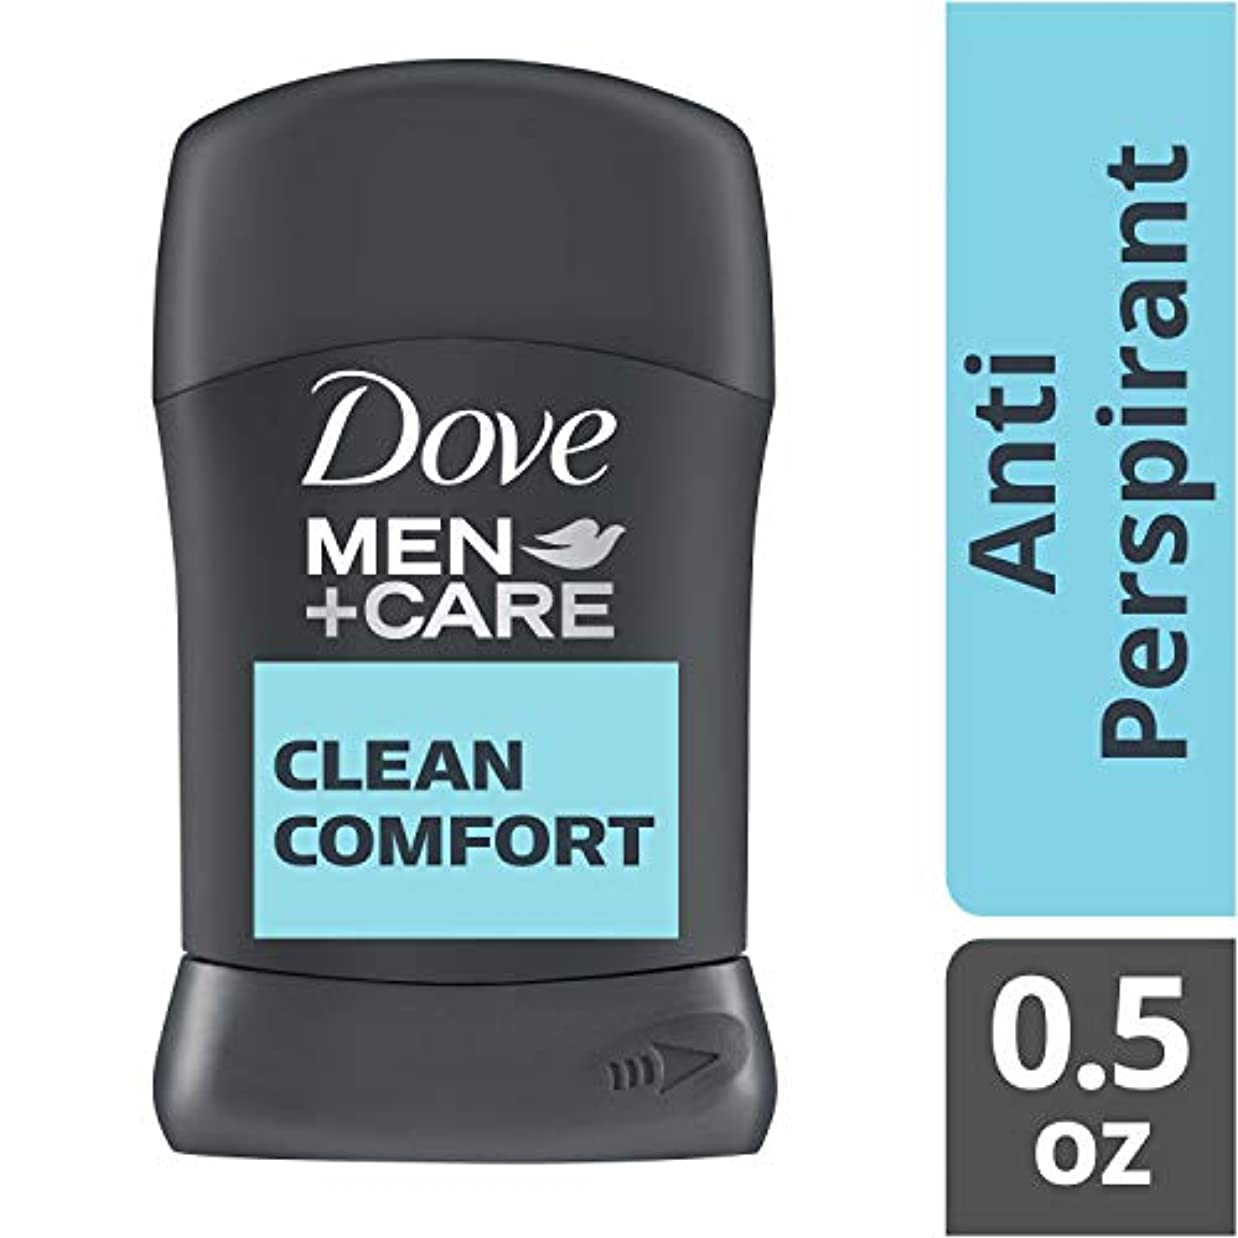 Dove Men Care Clean Comfort Antiperspirant Deodorant 0.5oz (14g)